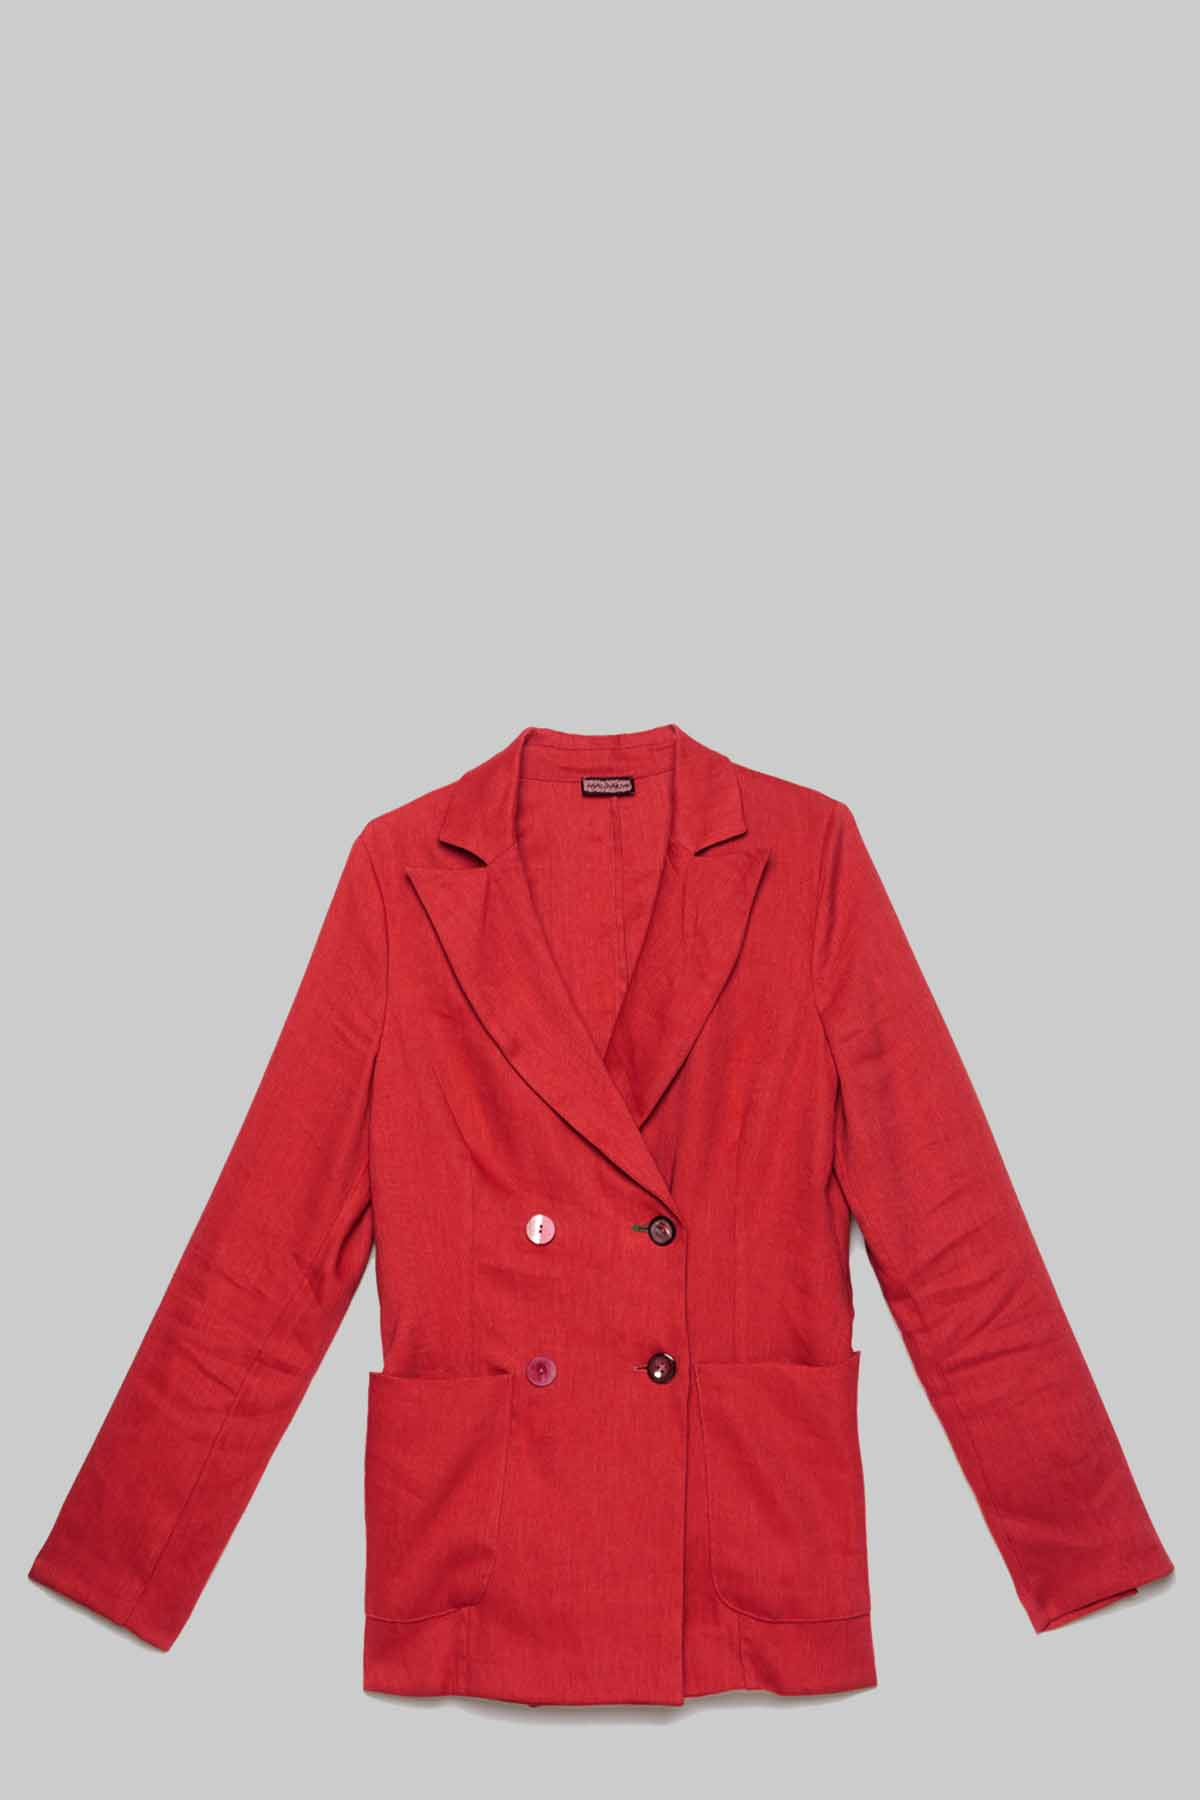 Women's Clothing Double-Breasted Diagonal Linen Jacket in Red Linen Maliparmi |  | JD63774007830032